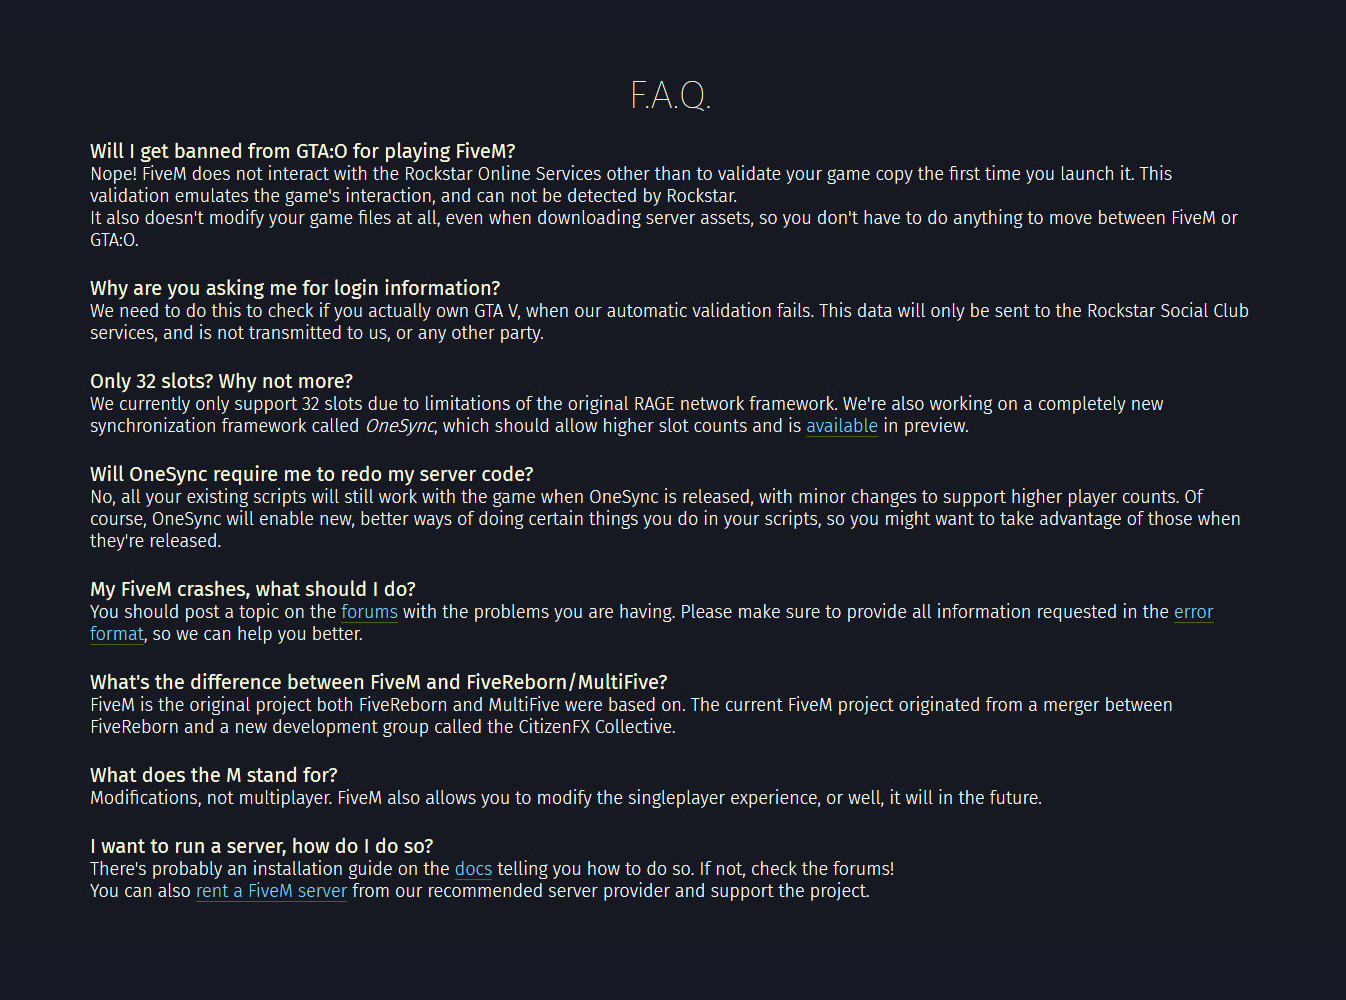 FAQ image - FiveM mod for Grand Theft Auto V - Mod DB